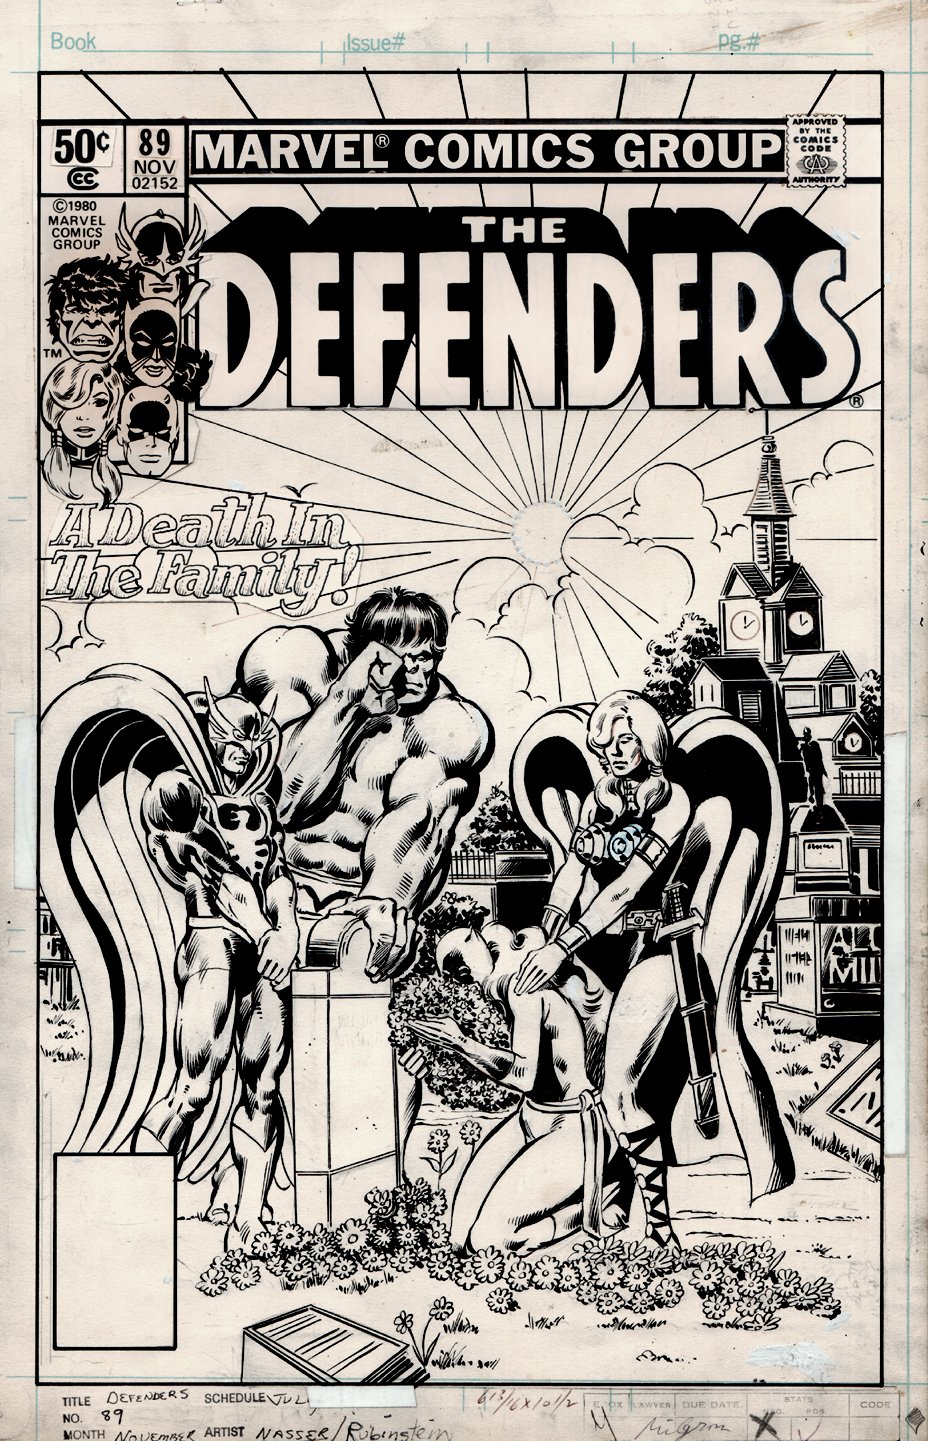 Defenders #89 Cover (A Death In The Family!) 1980